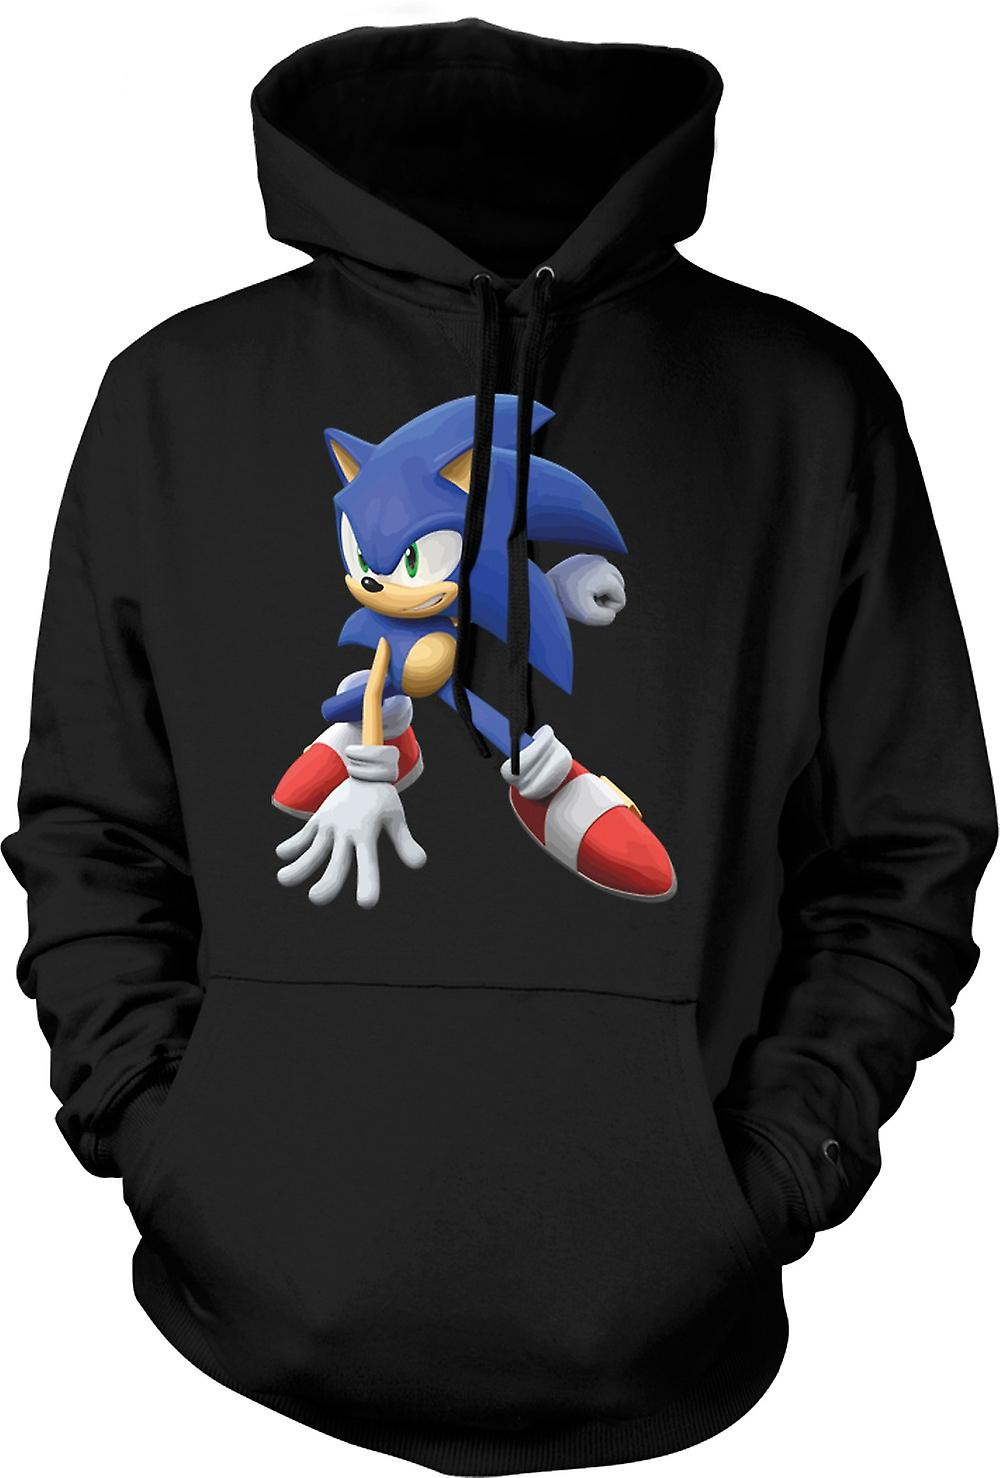 Mens Hoodie - Sonic The Hedgehog - Gamer